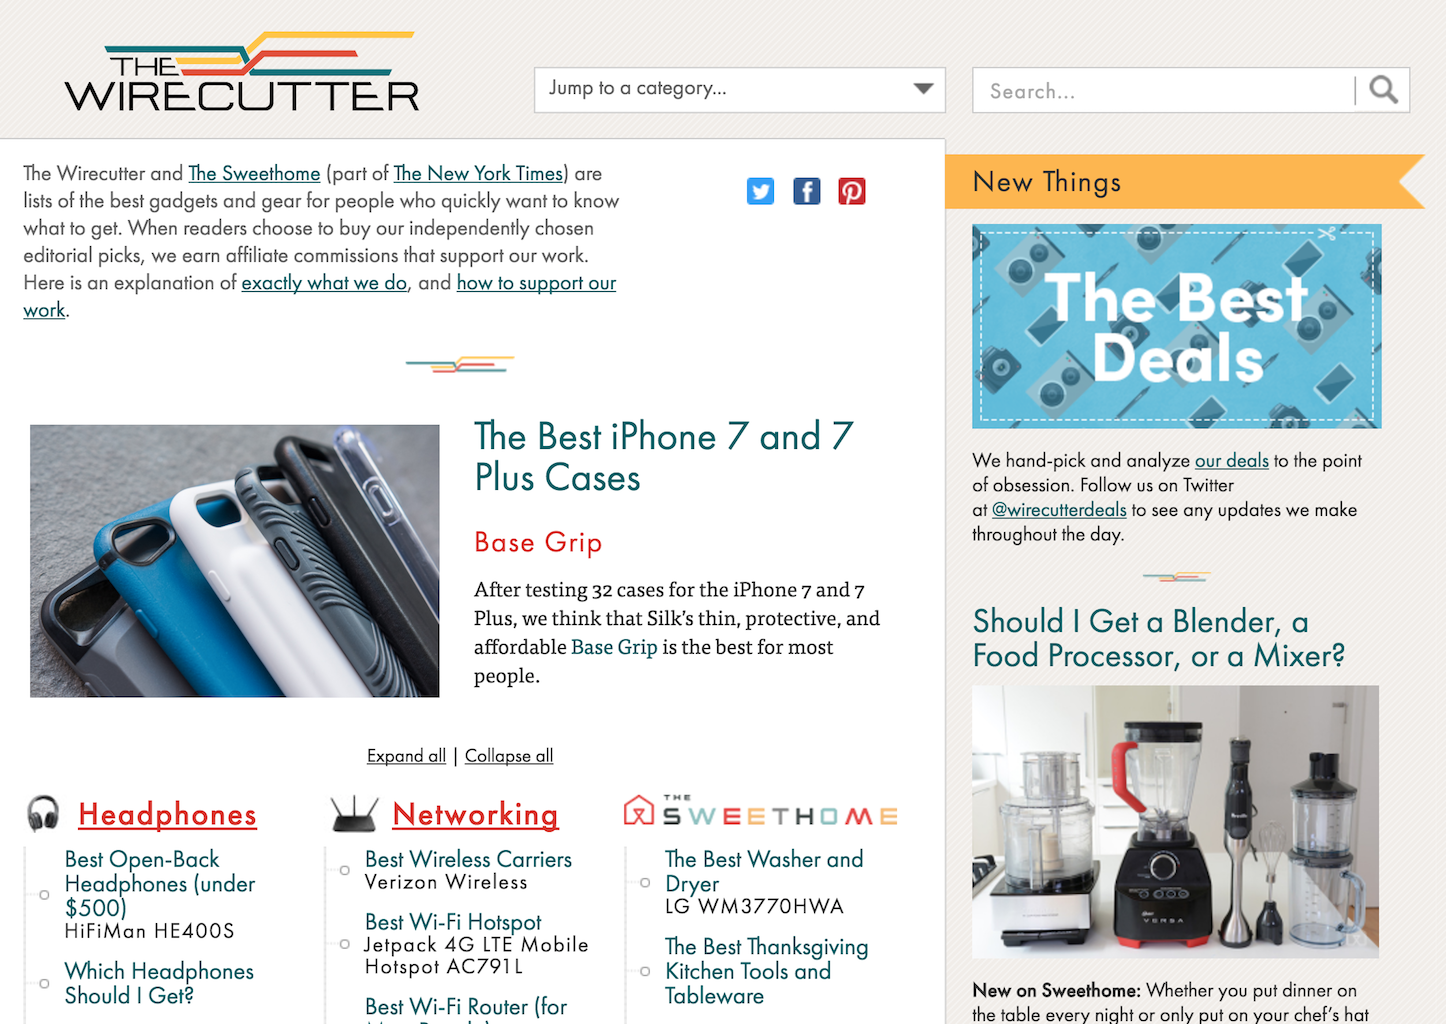 TheWirecutter